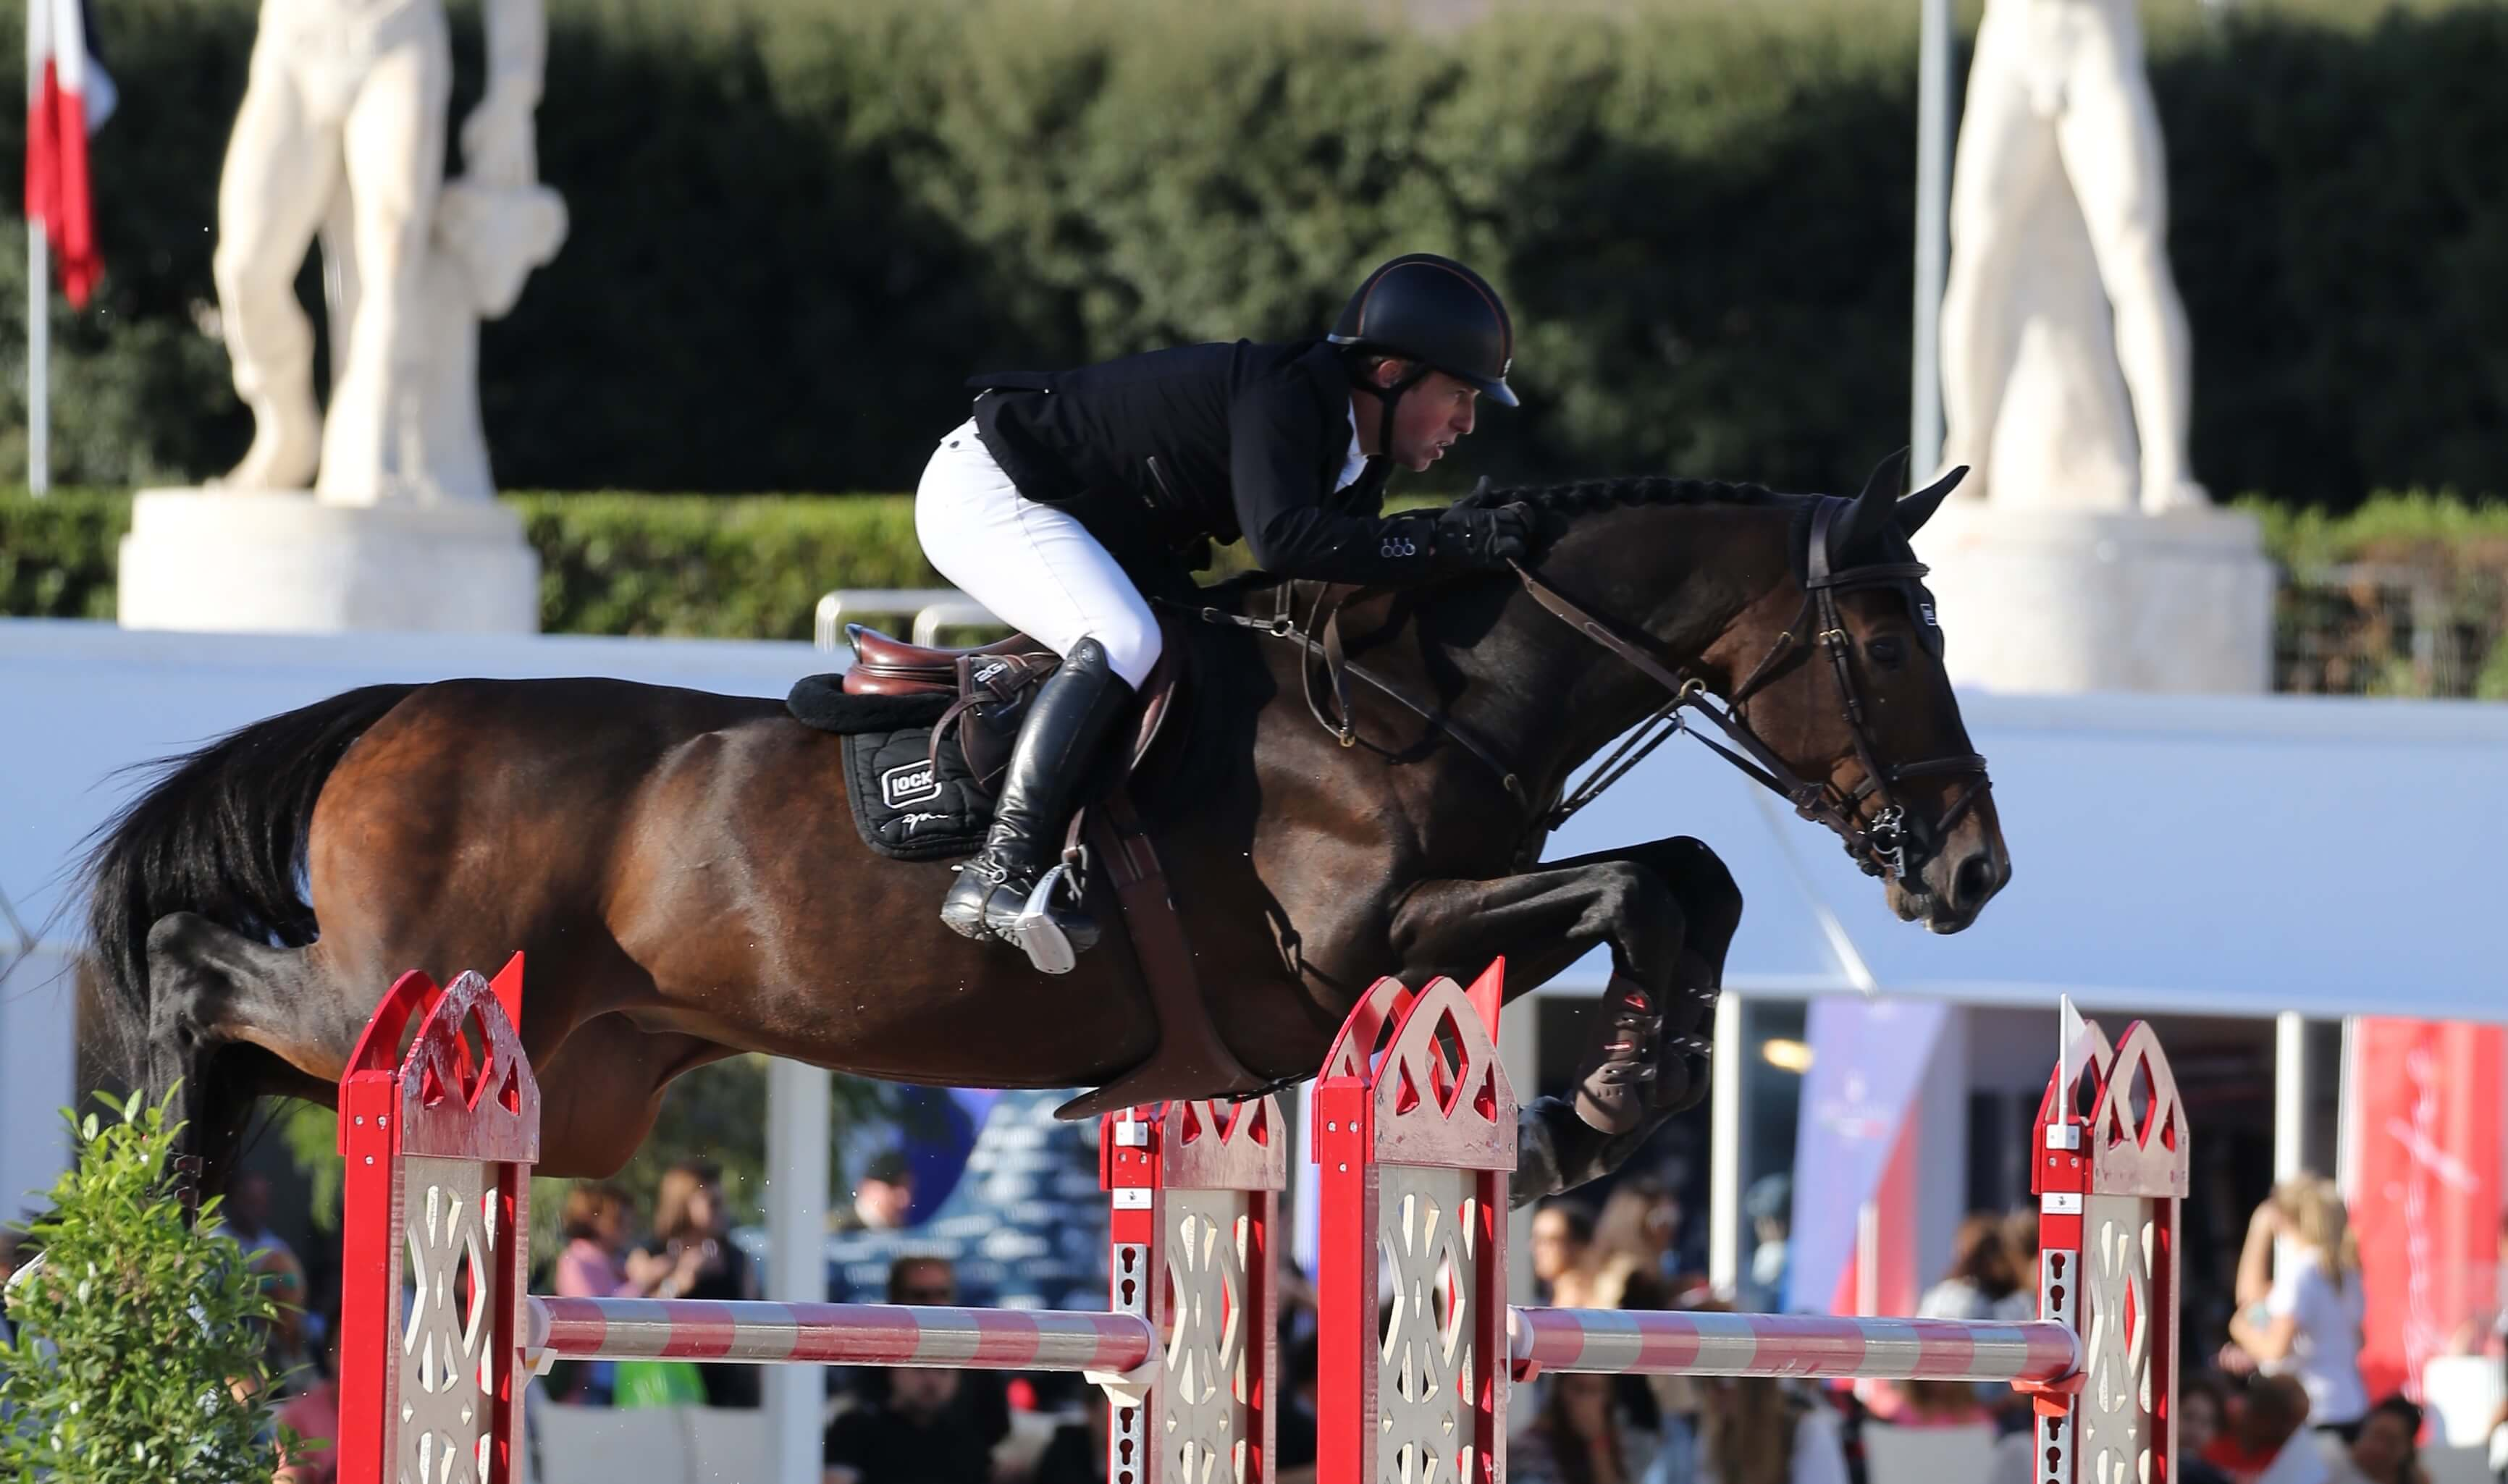 CENZO clear in 2* Salland in Longines Ranking class